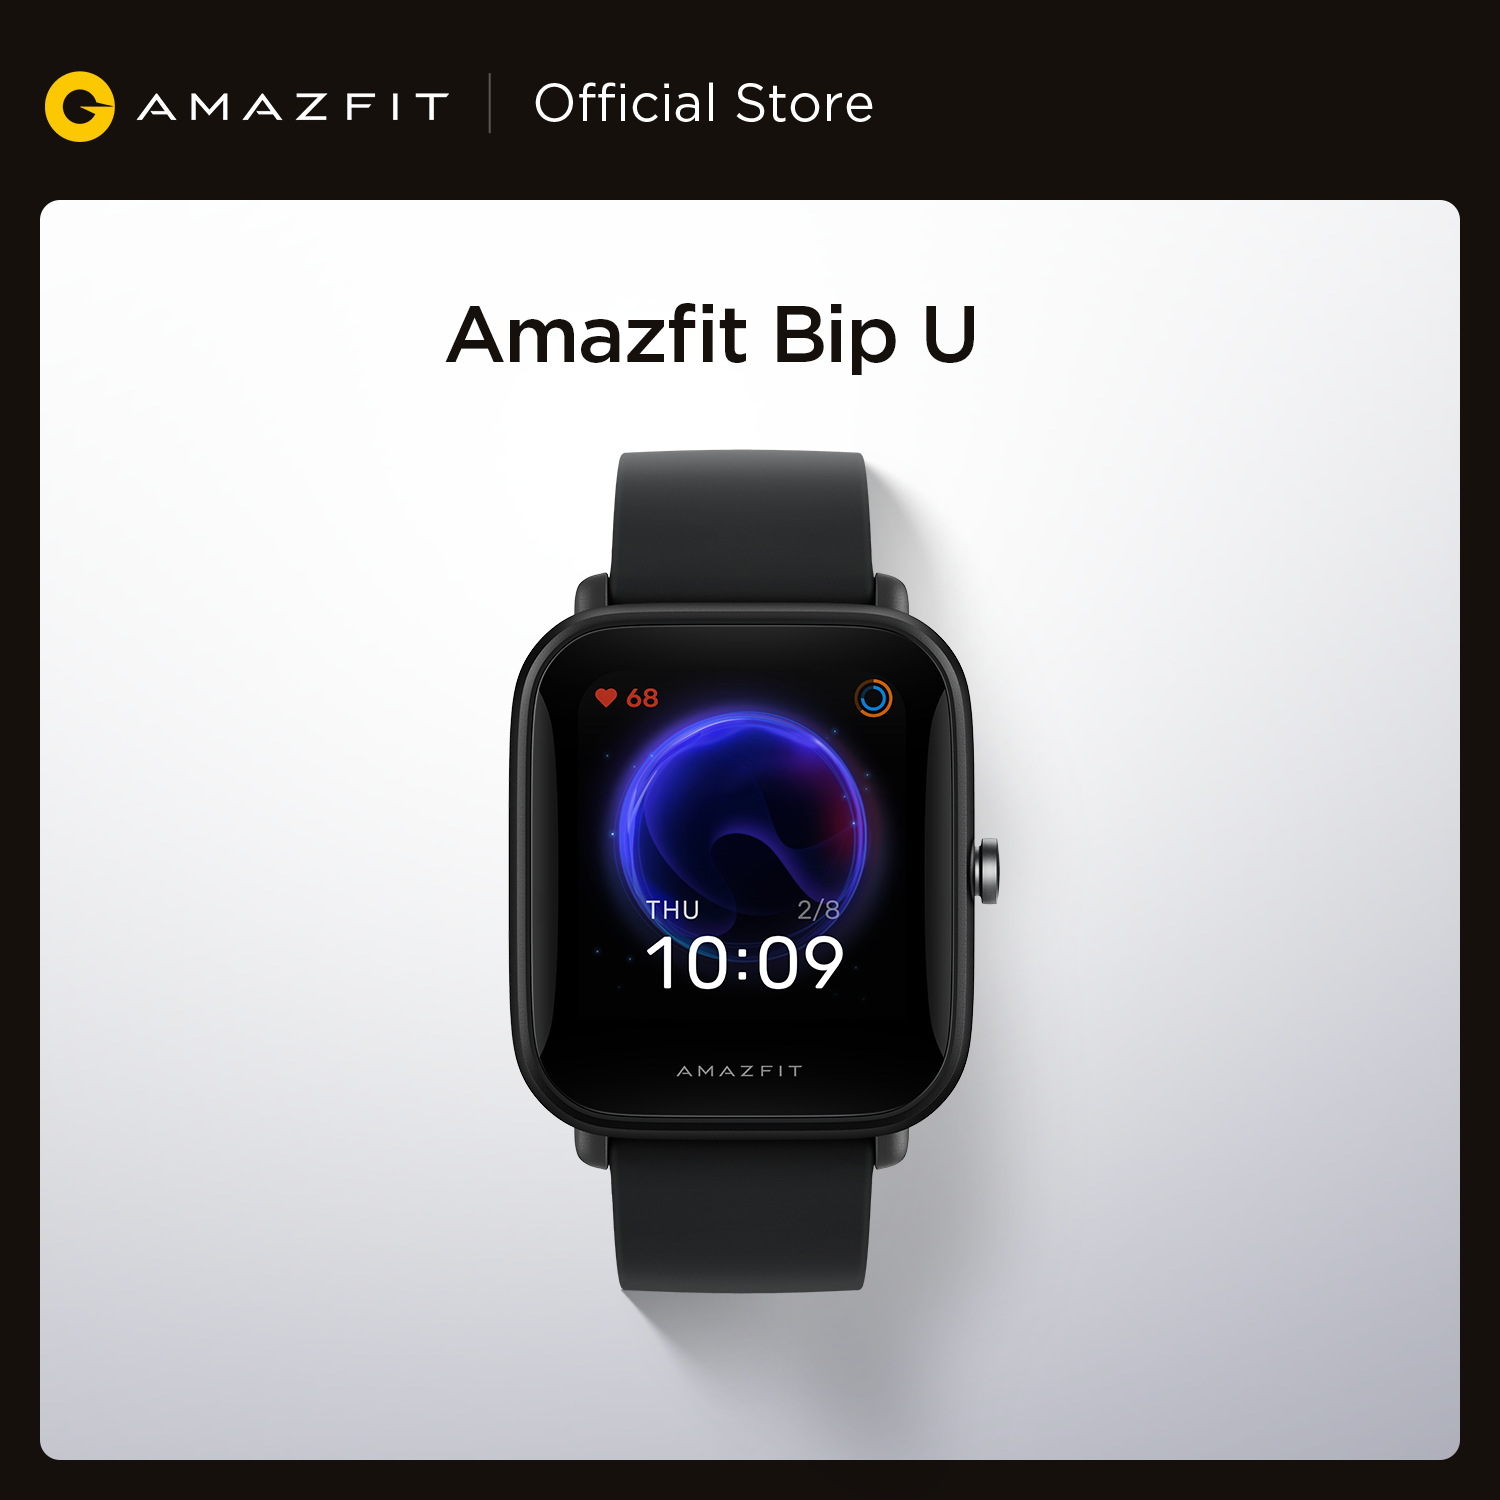 New Original Amazfit Bip U Smartwatch 5ATM Water Resistant Color Display Sport Tracking Smart Watch For Android iOS Phone|Smart Watches| - AliExpress